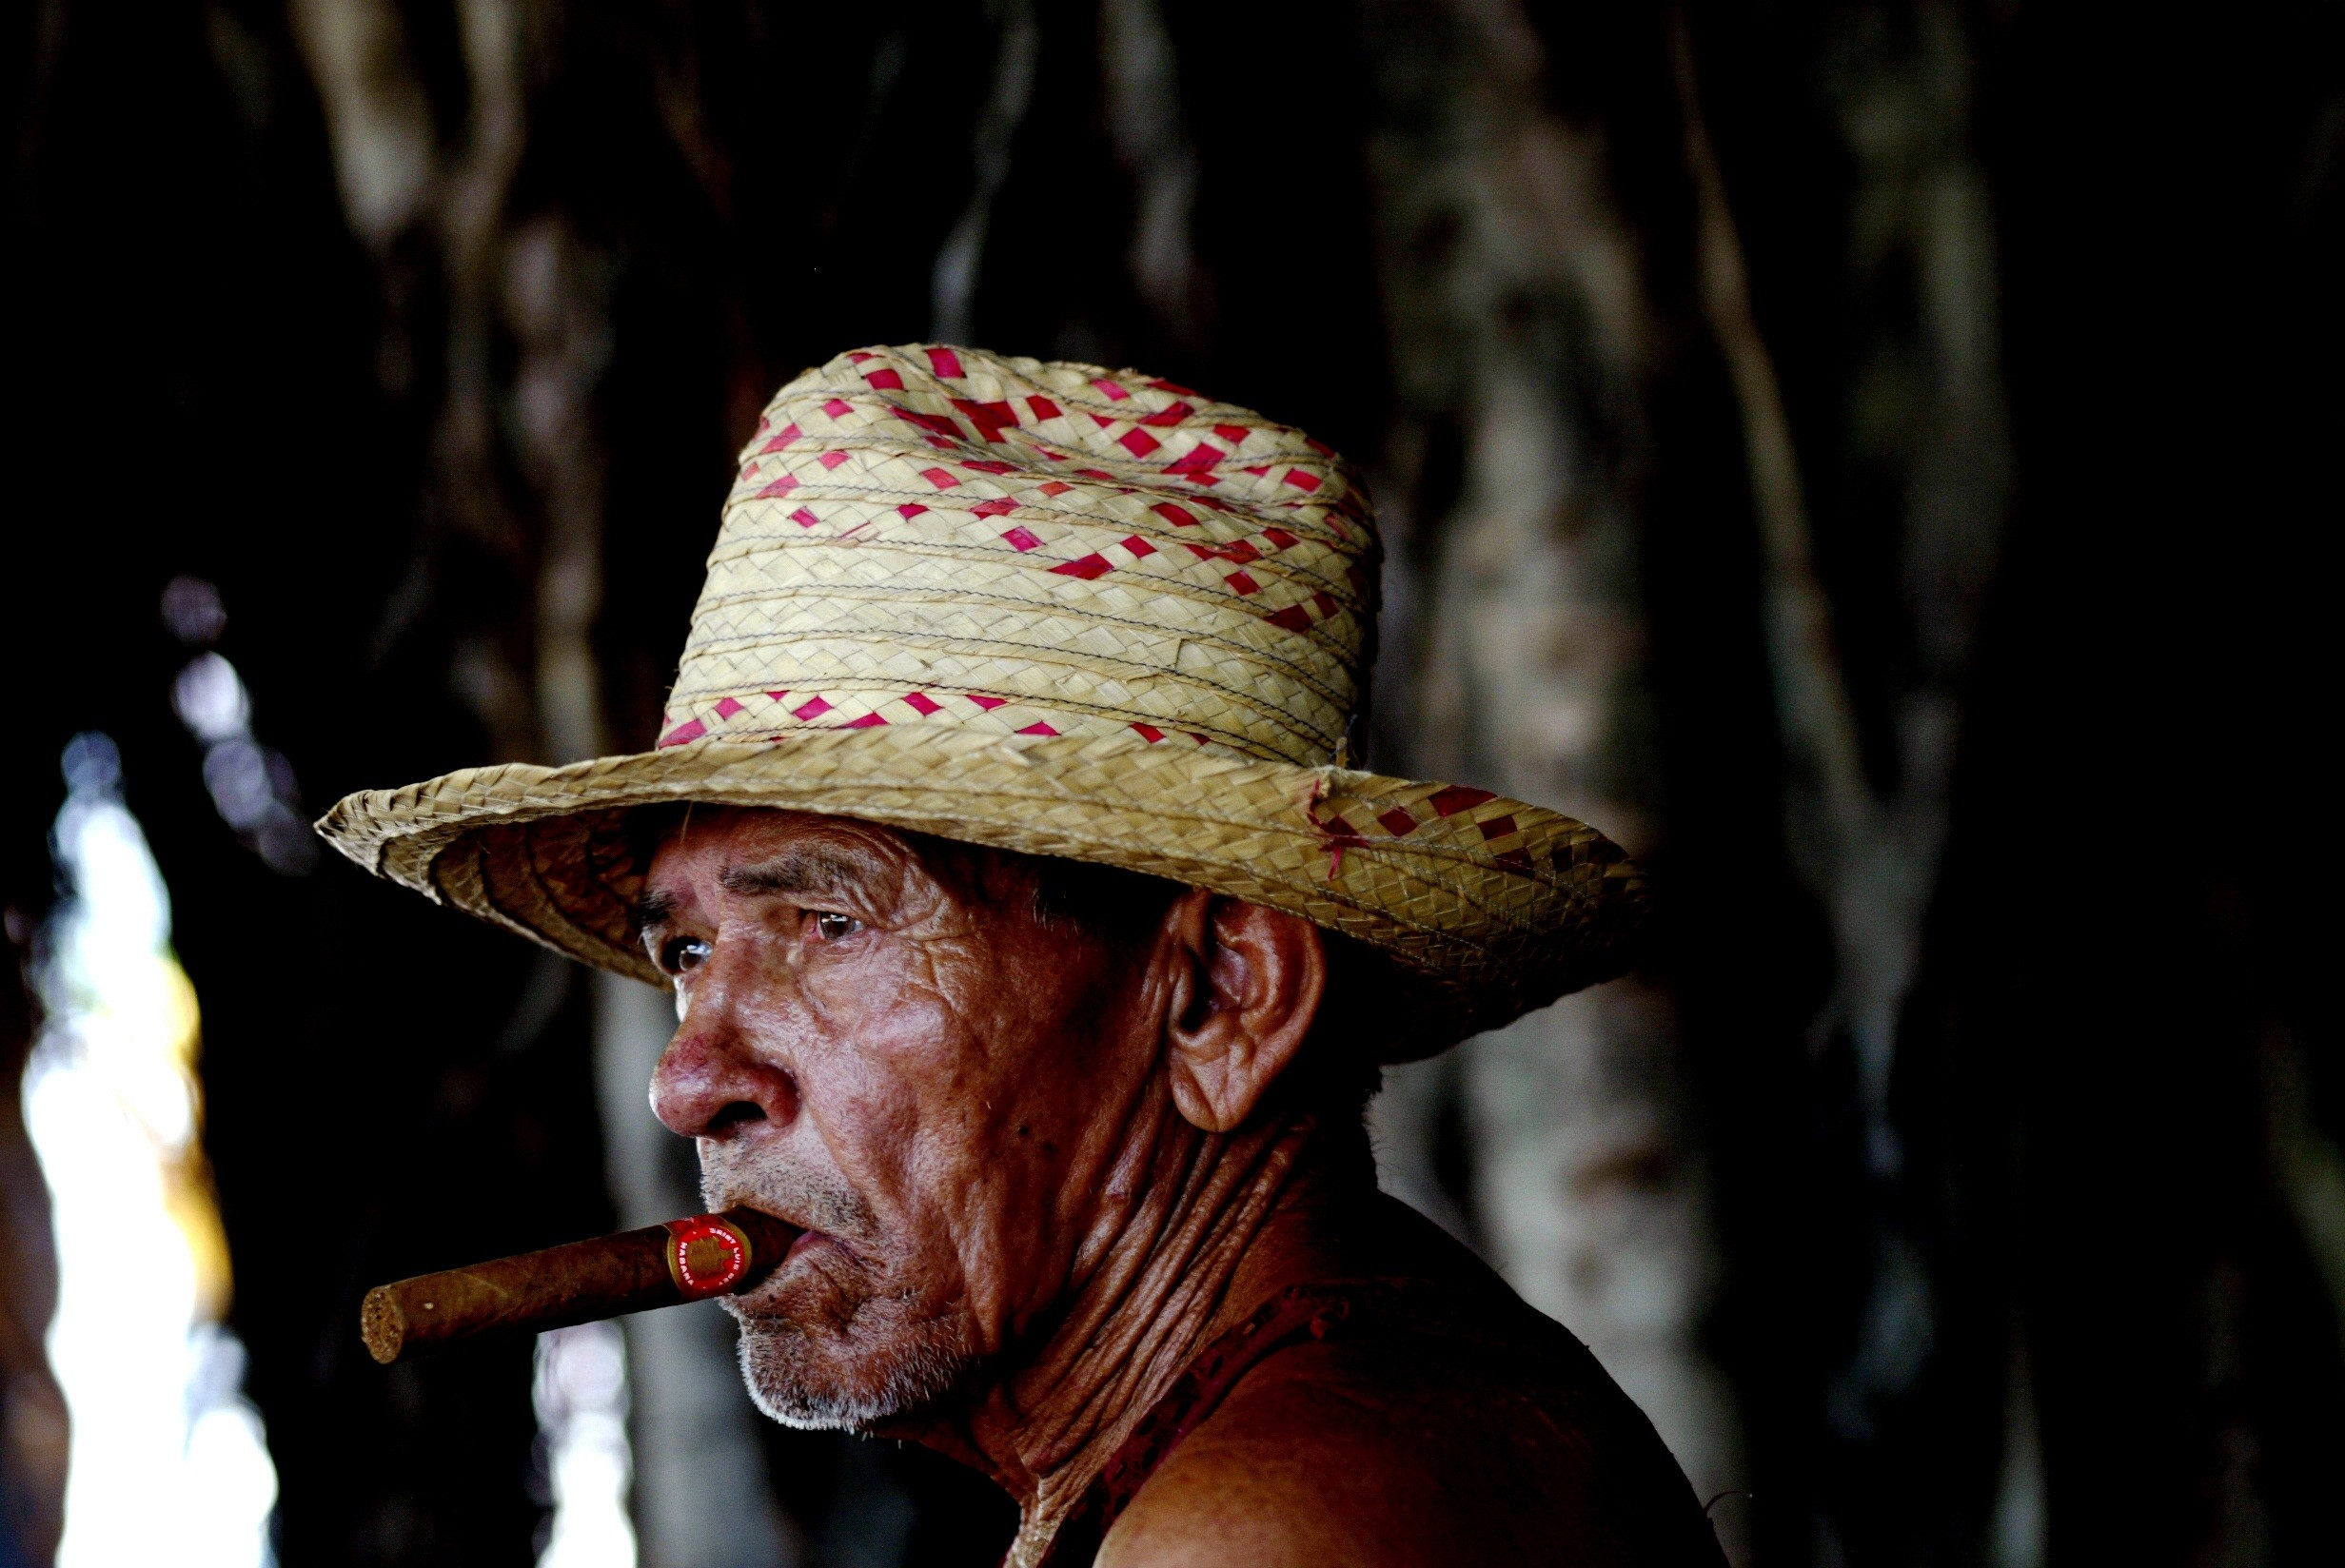 Indians portrait old man hat cigar photography hd wallpaper 2464x1648